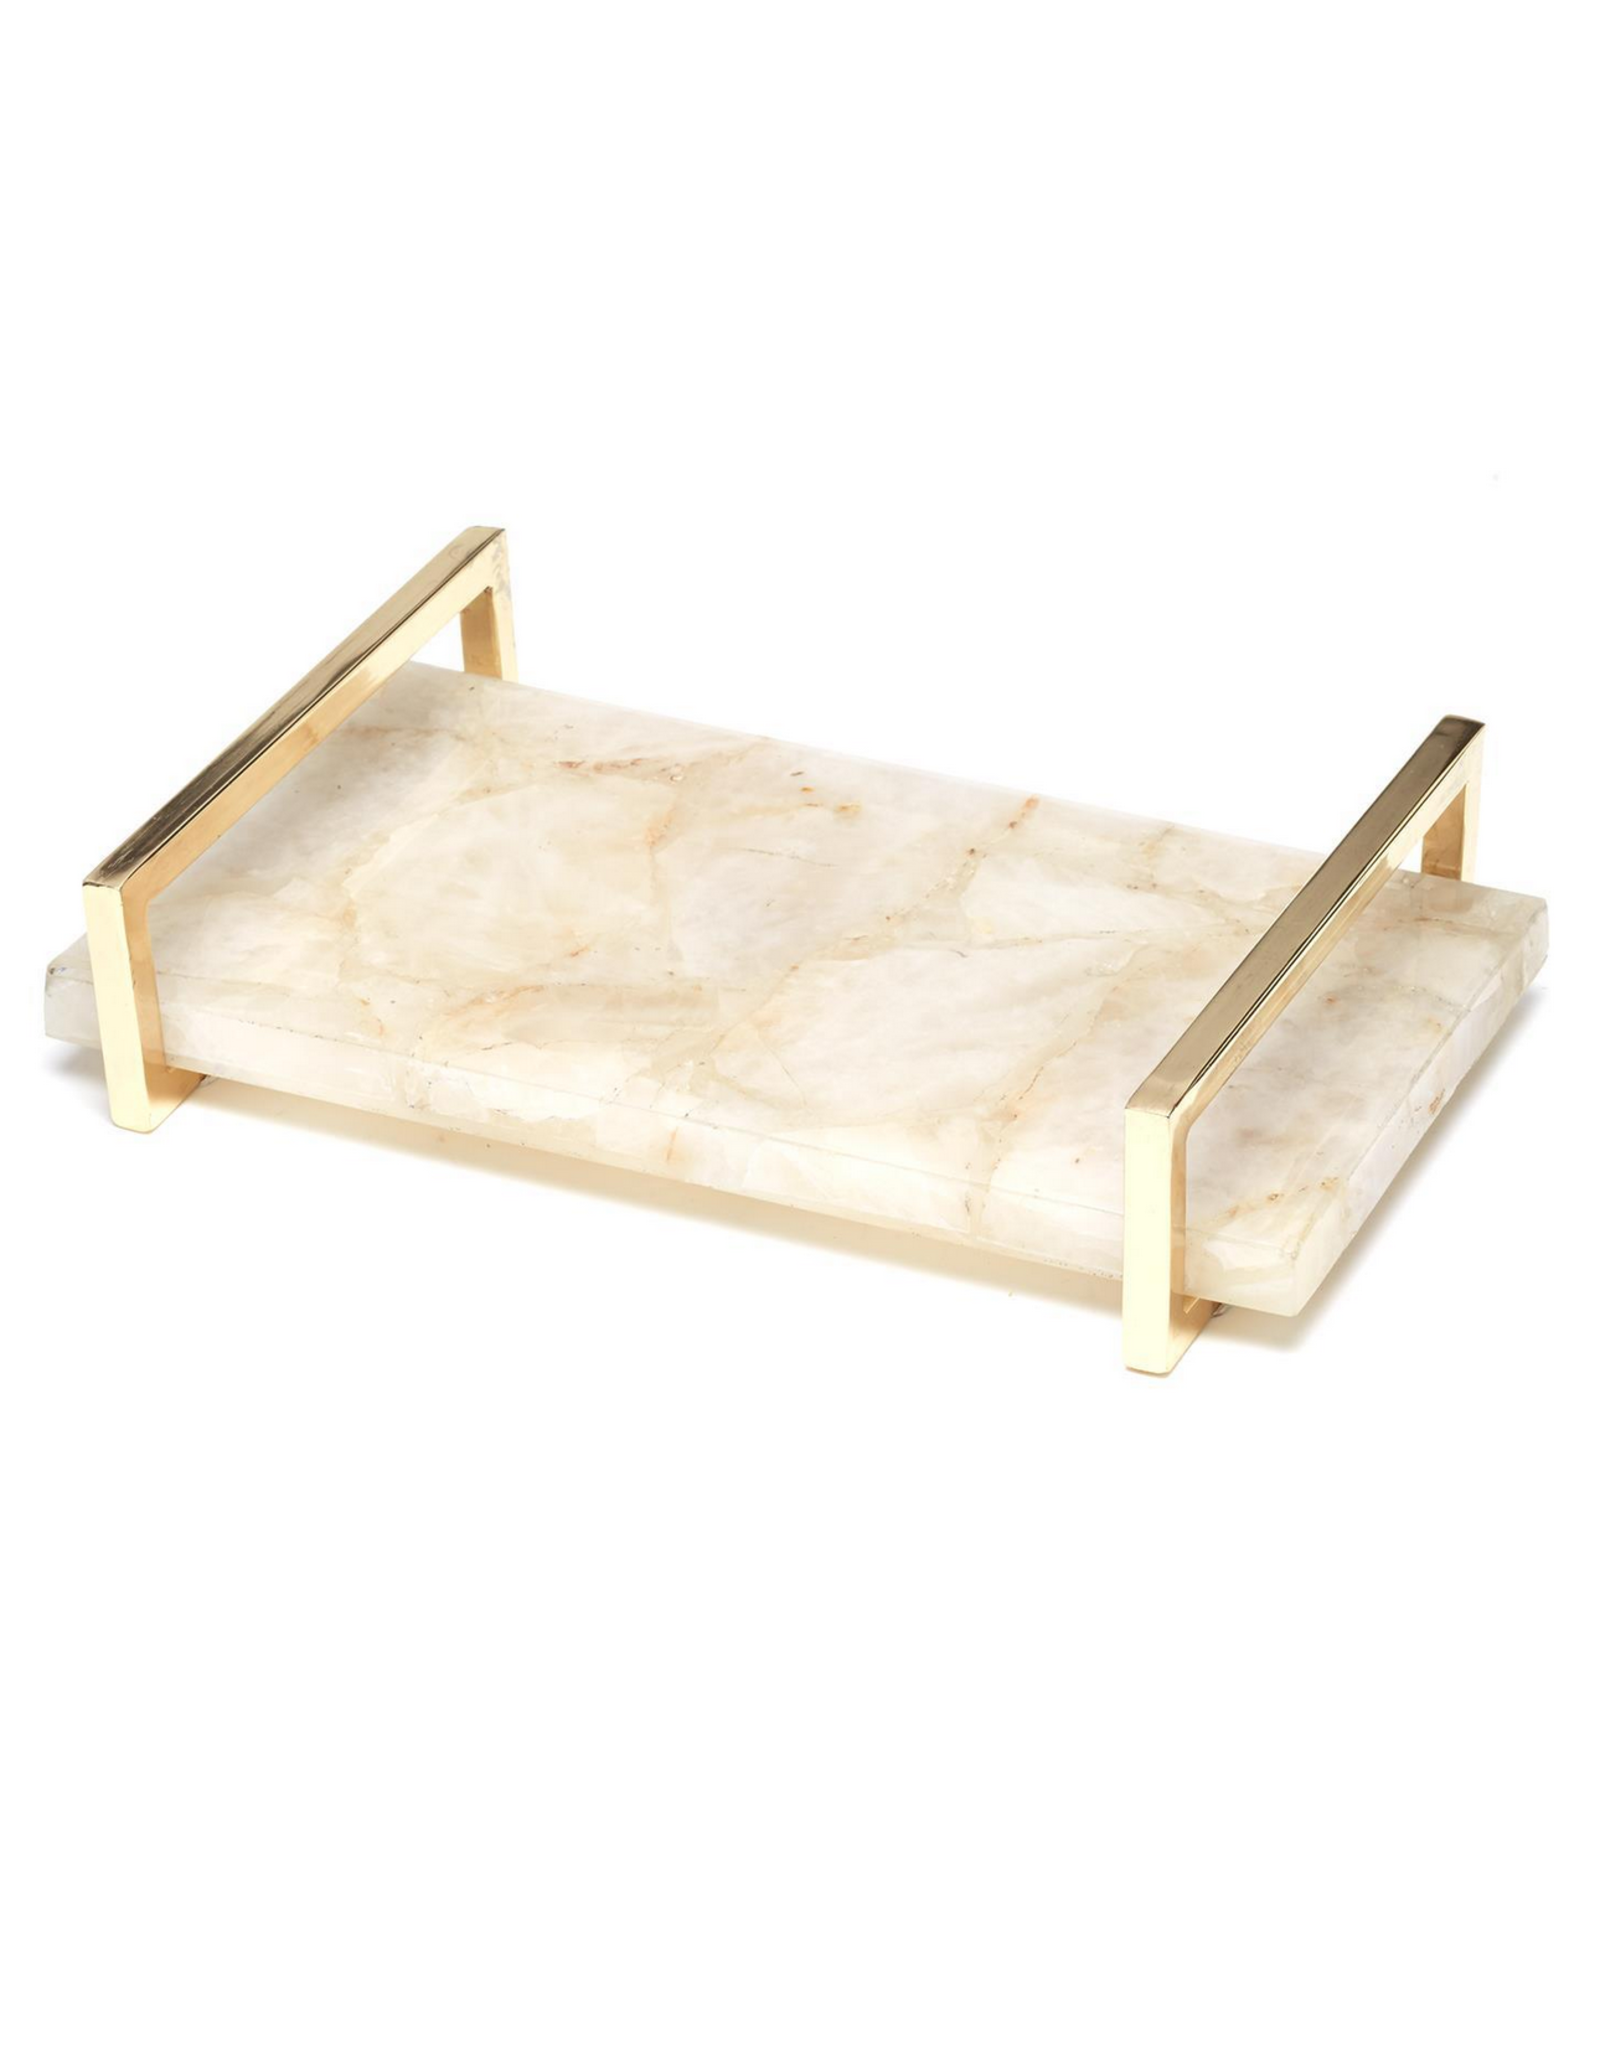 White Quartz Decorative Tray